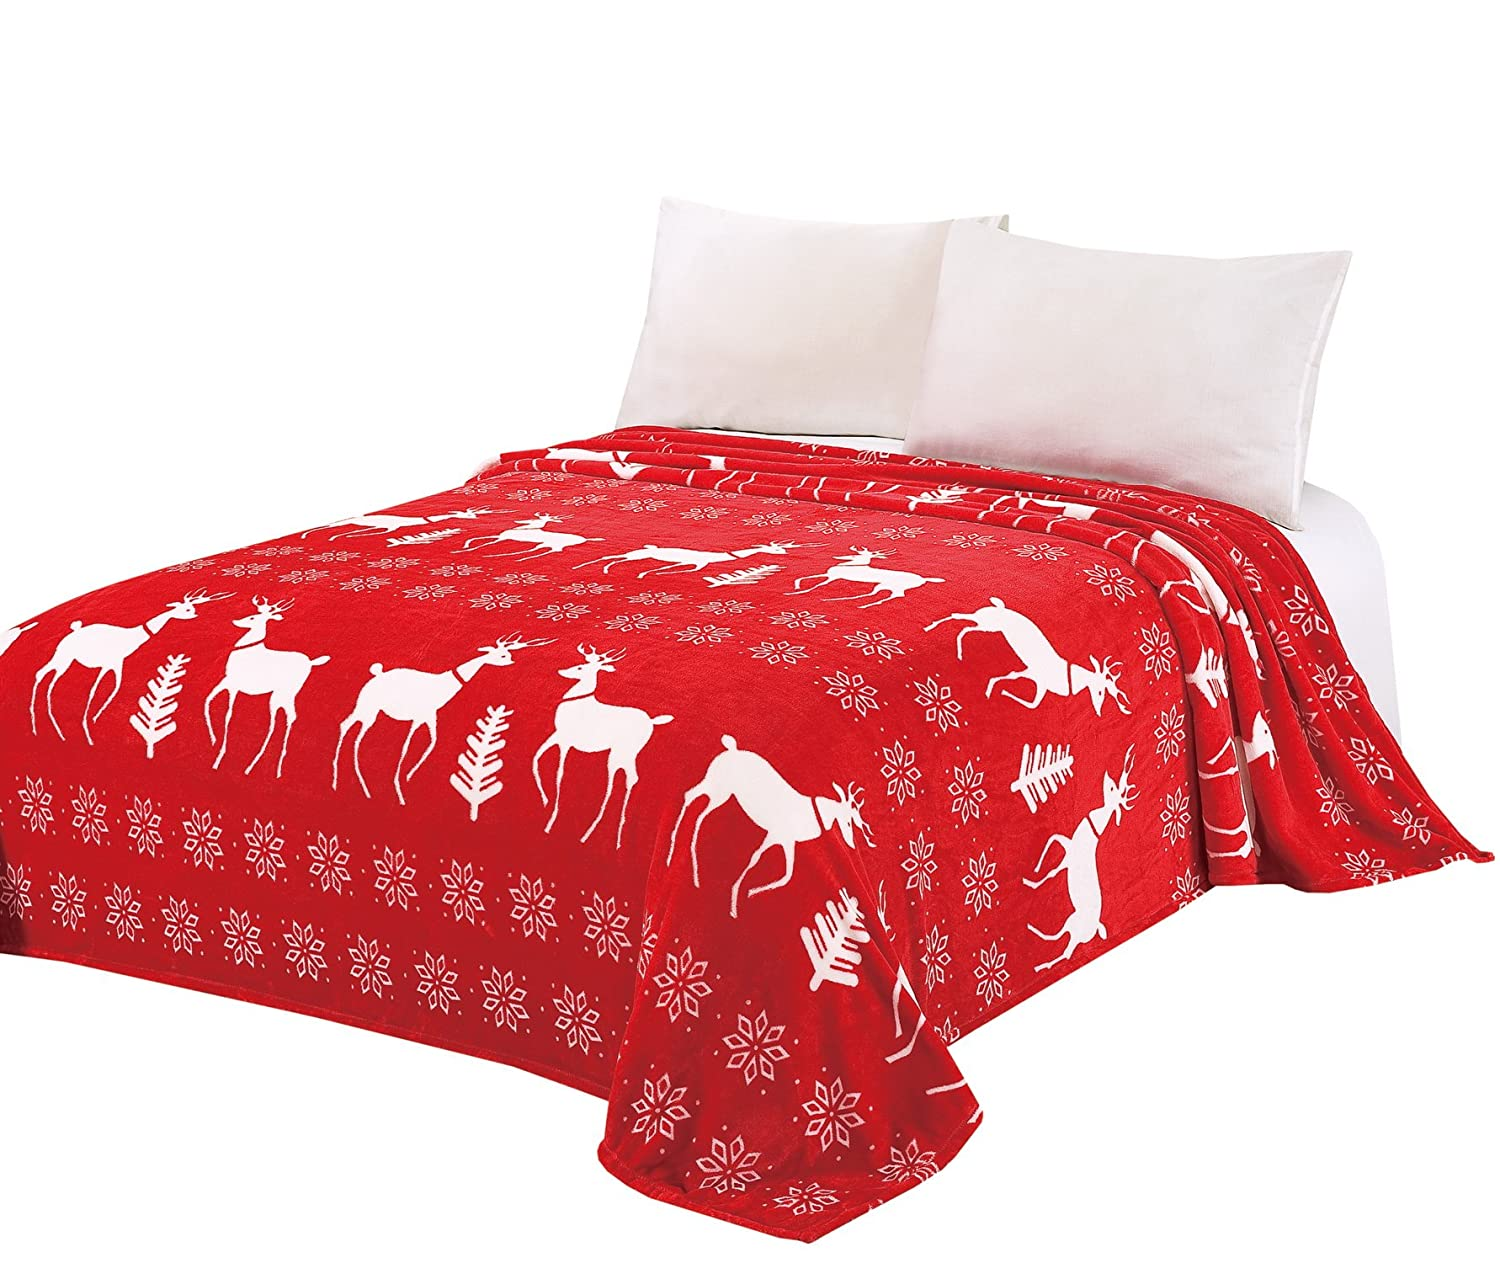 Amazon.com: BOON Light Weight Christmas Collection Printed Flannel ...